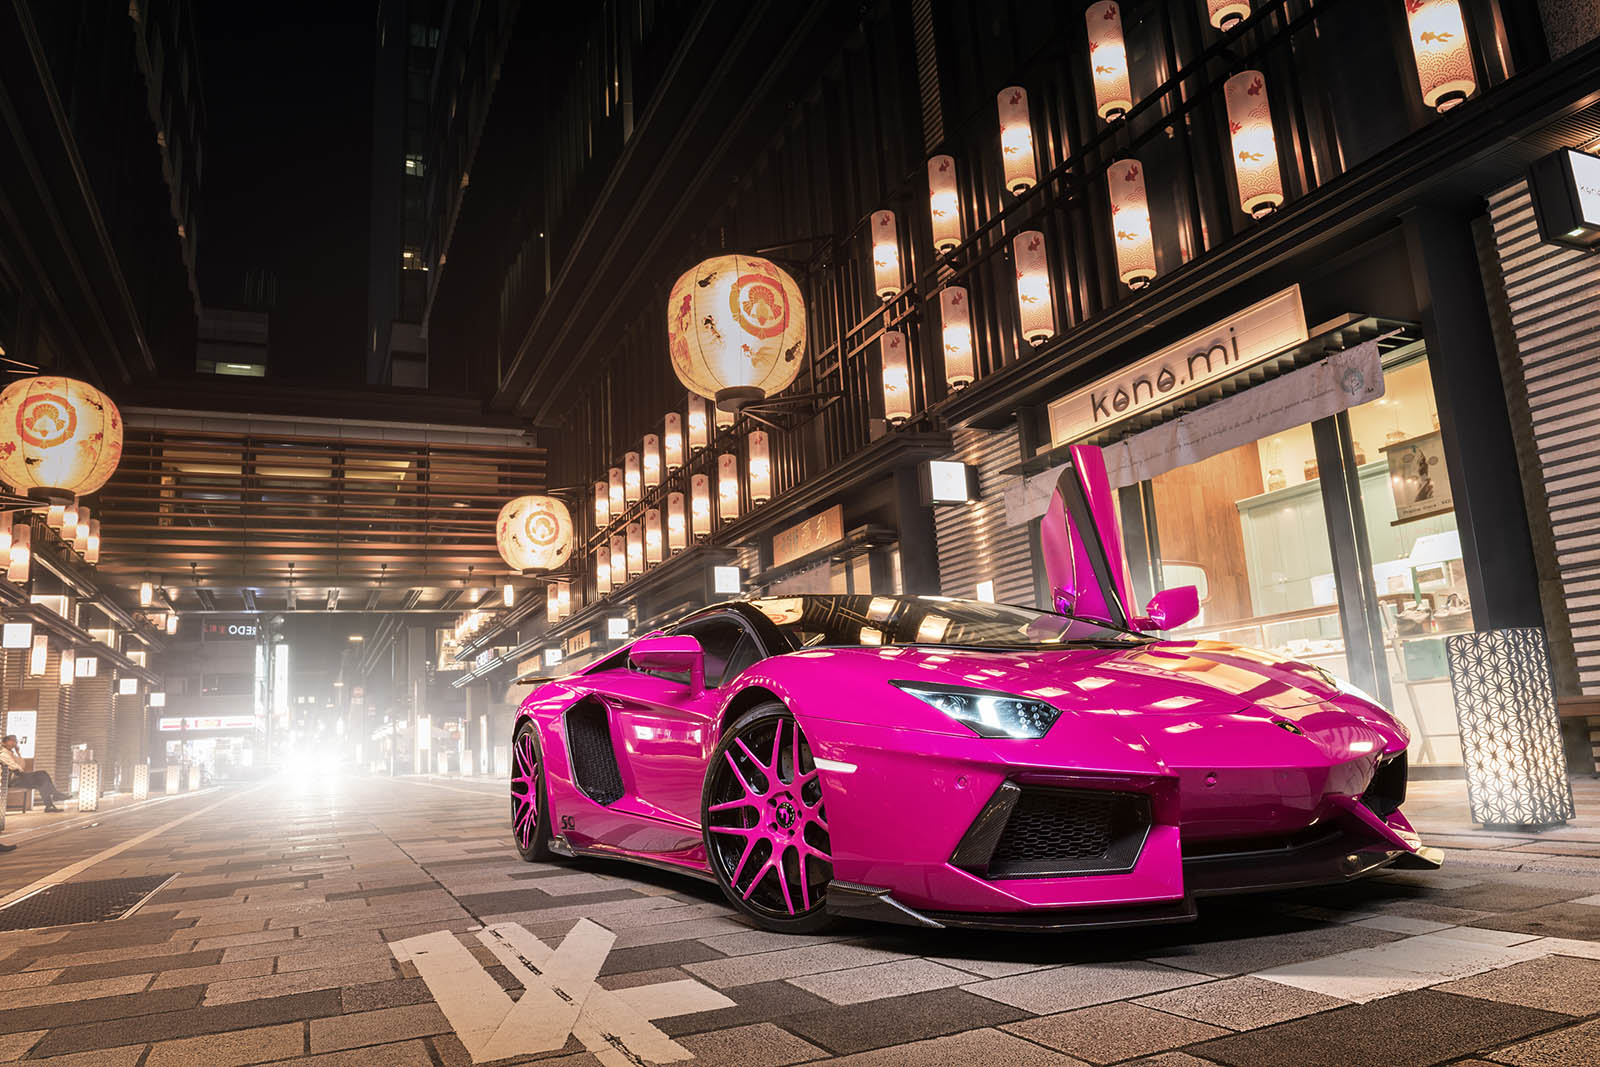 How Much To Paint A Car >> Pink Lamborghini Aventador Turns Heads In Tokyo | Carscoops